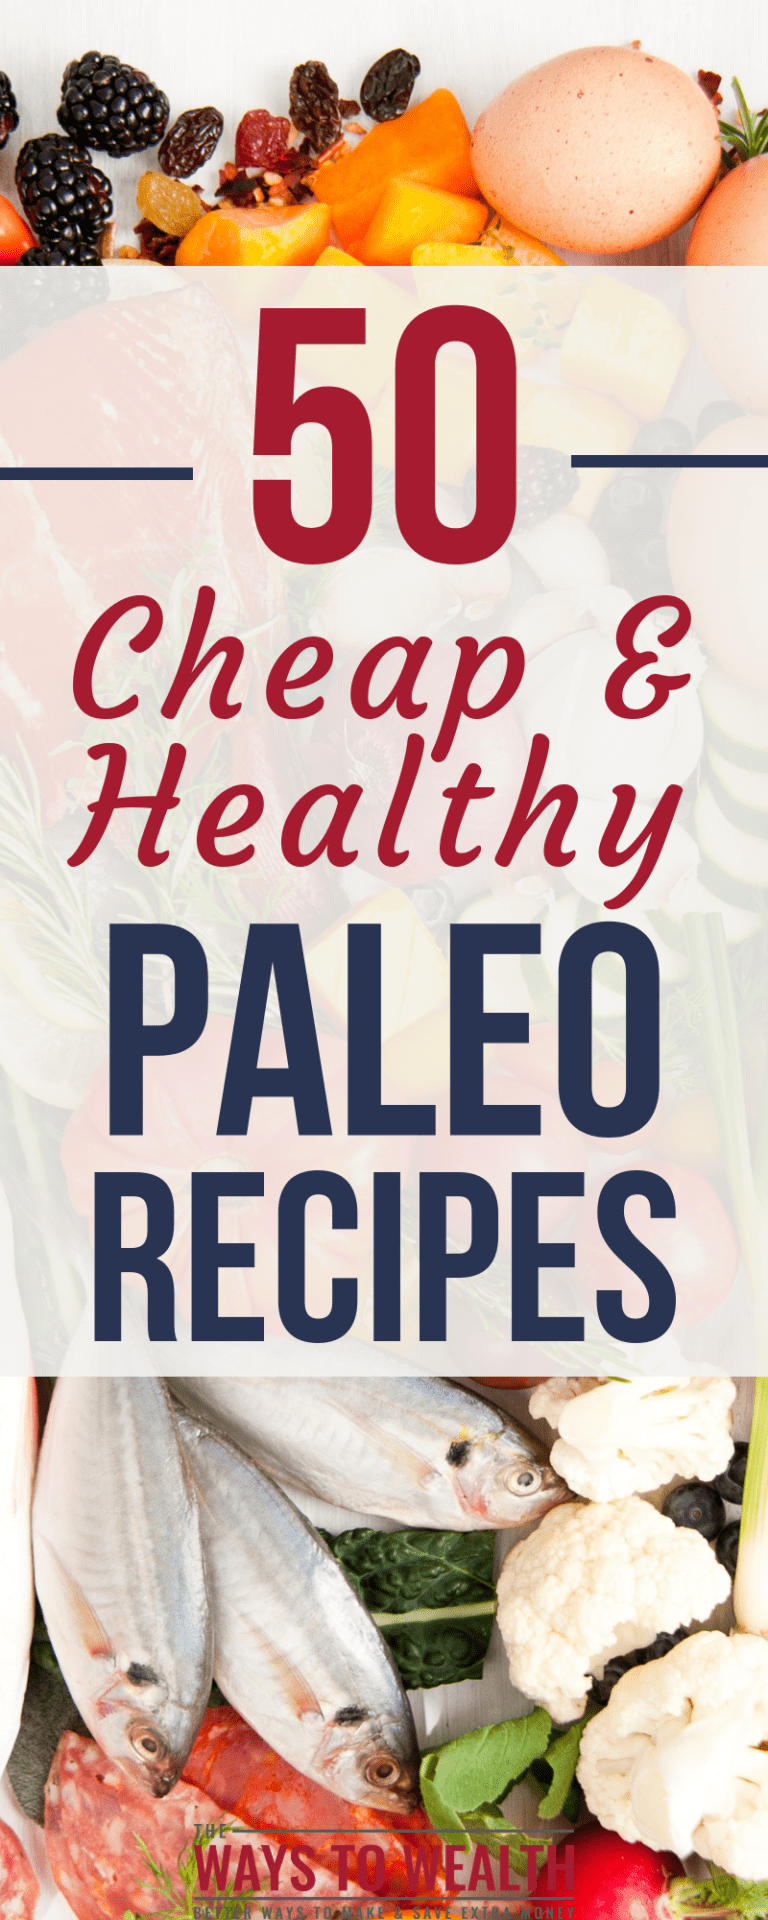 50+ Budget Friendly, Low-Carb Paleo Meal Ideas images